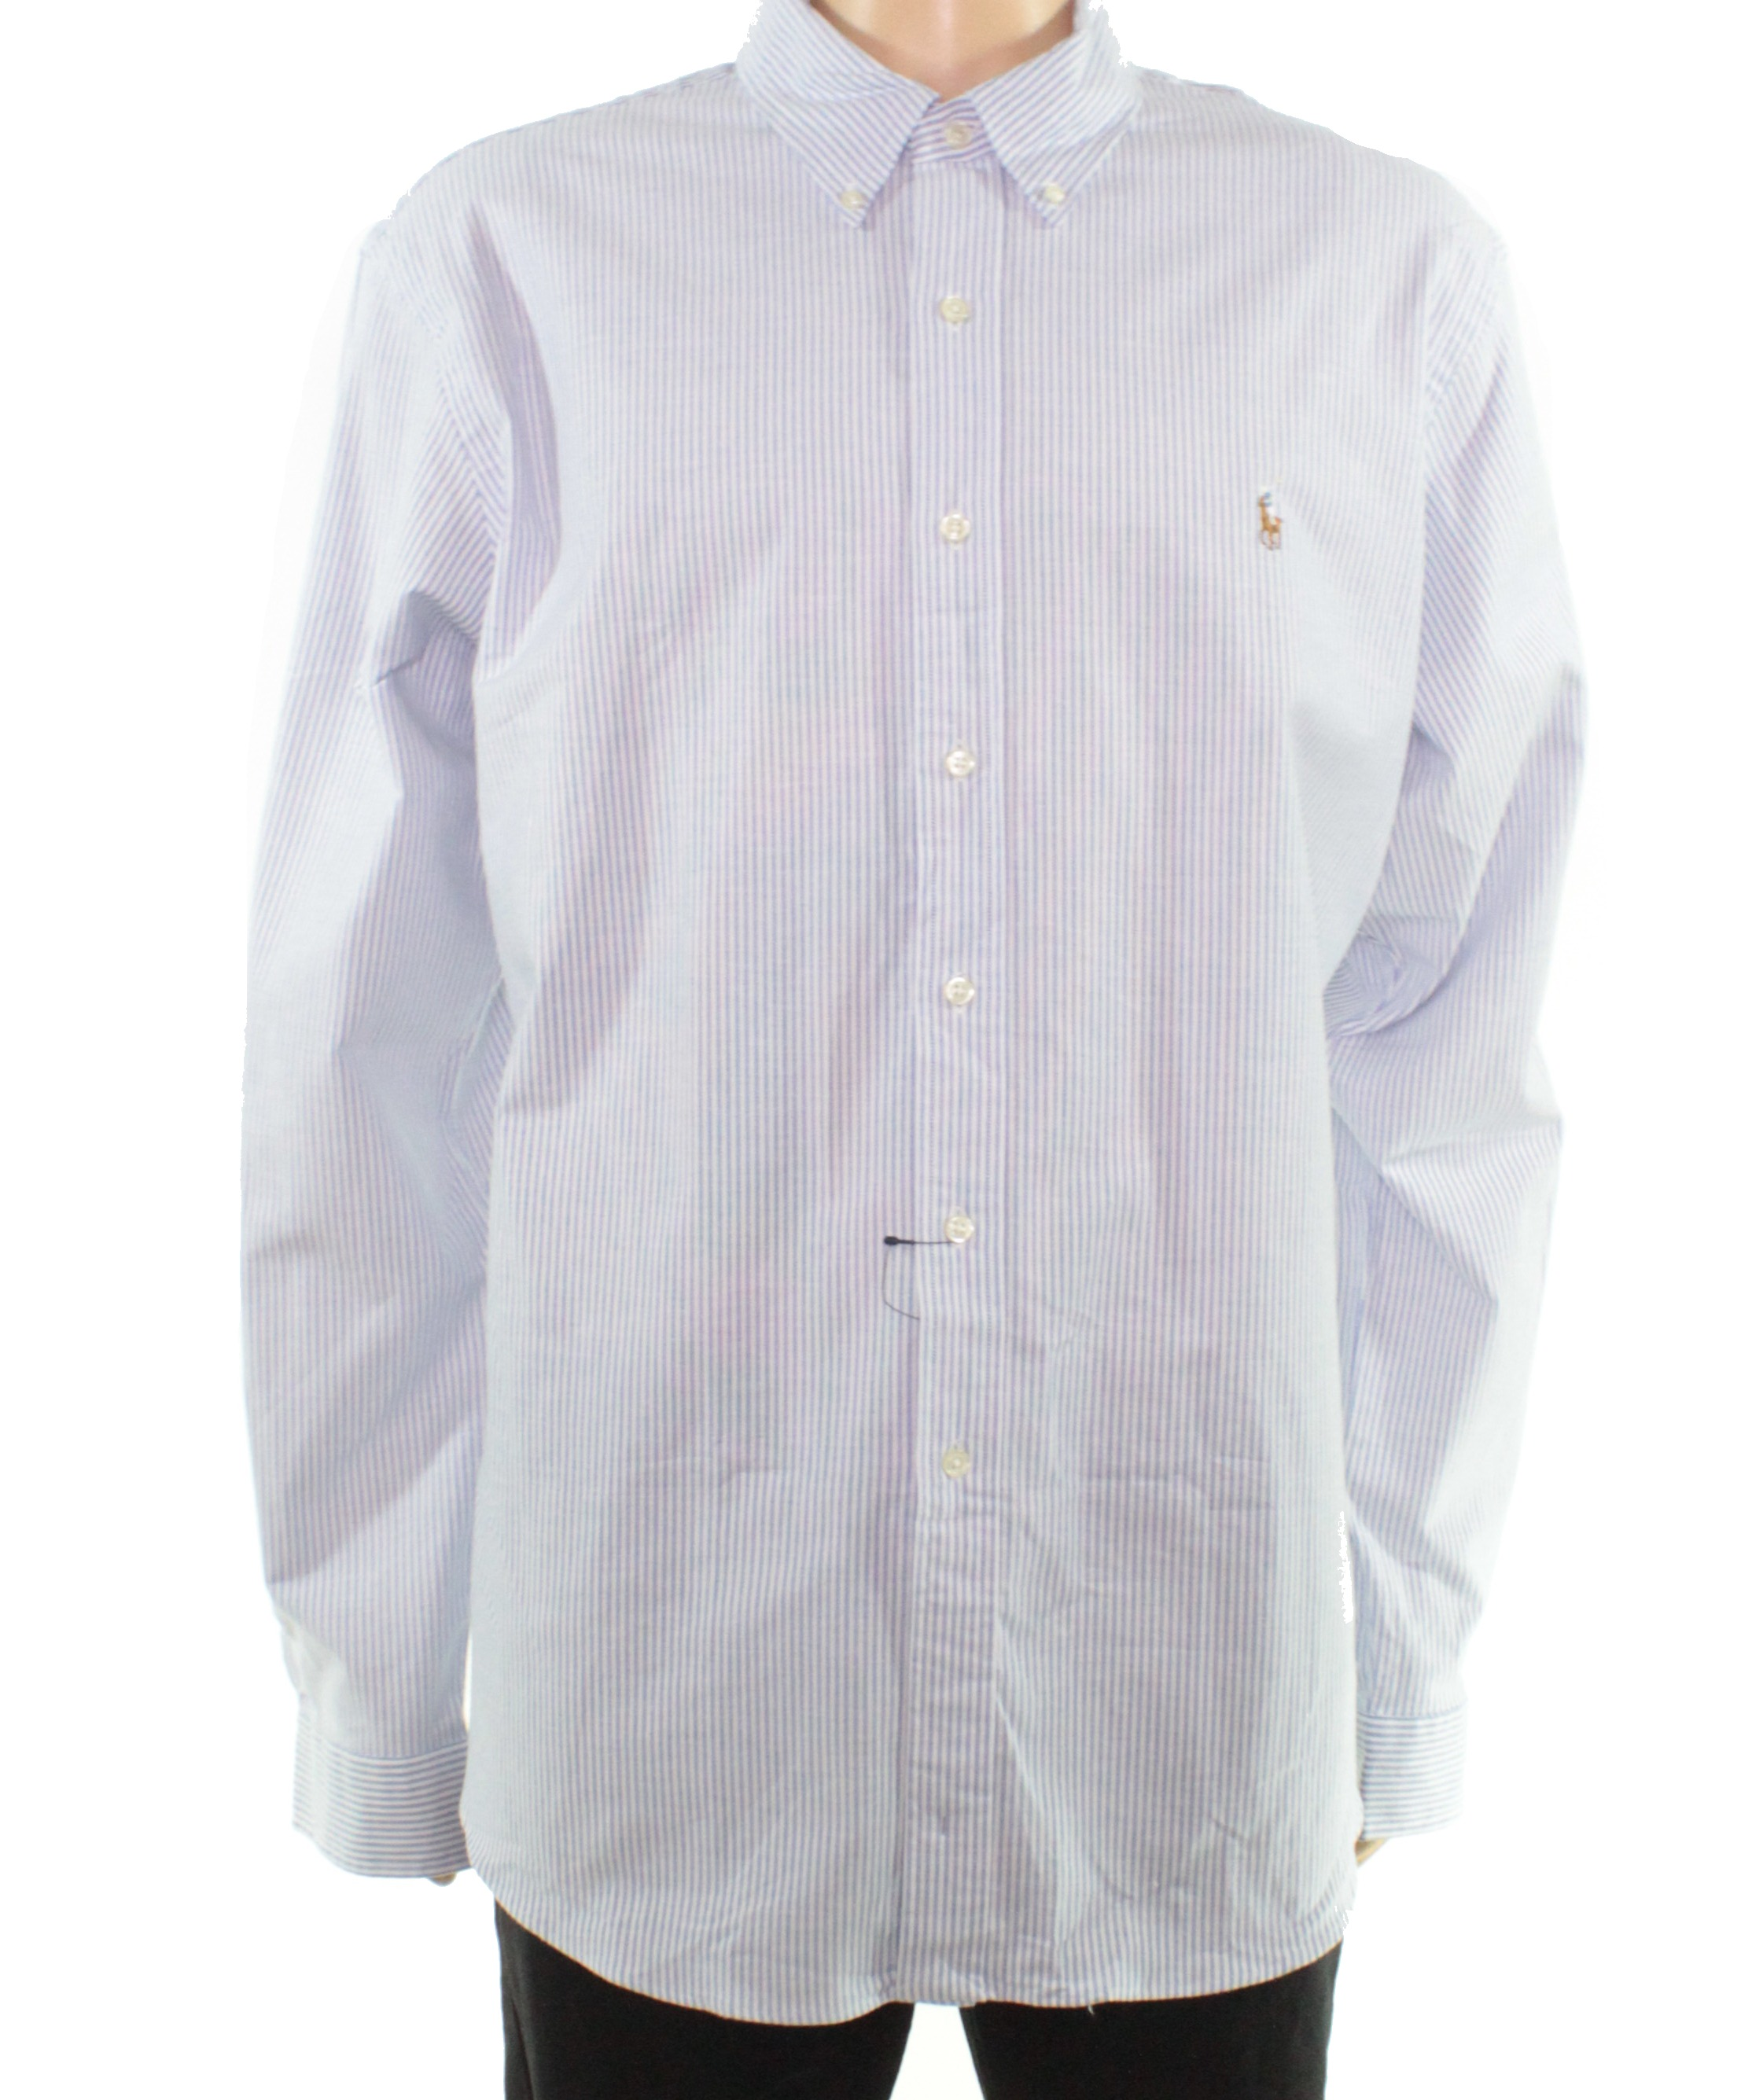 Tommy Hilfiger NEW Blue Mens Size 2XL Stripe Slim Button Down Shirt $69 #369